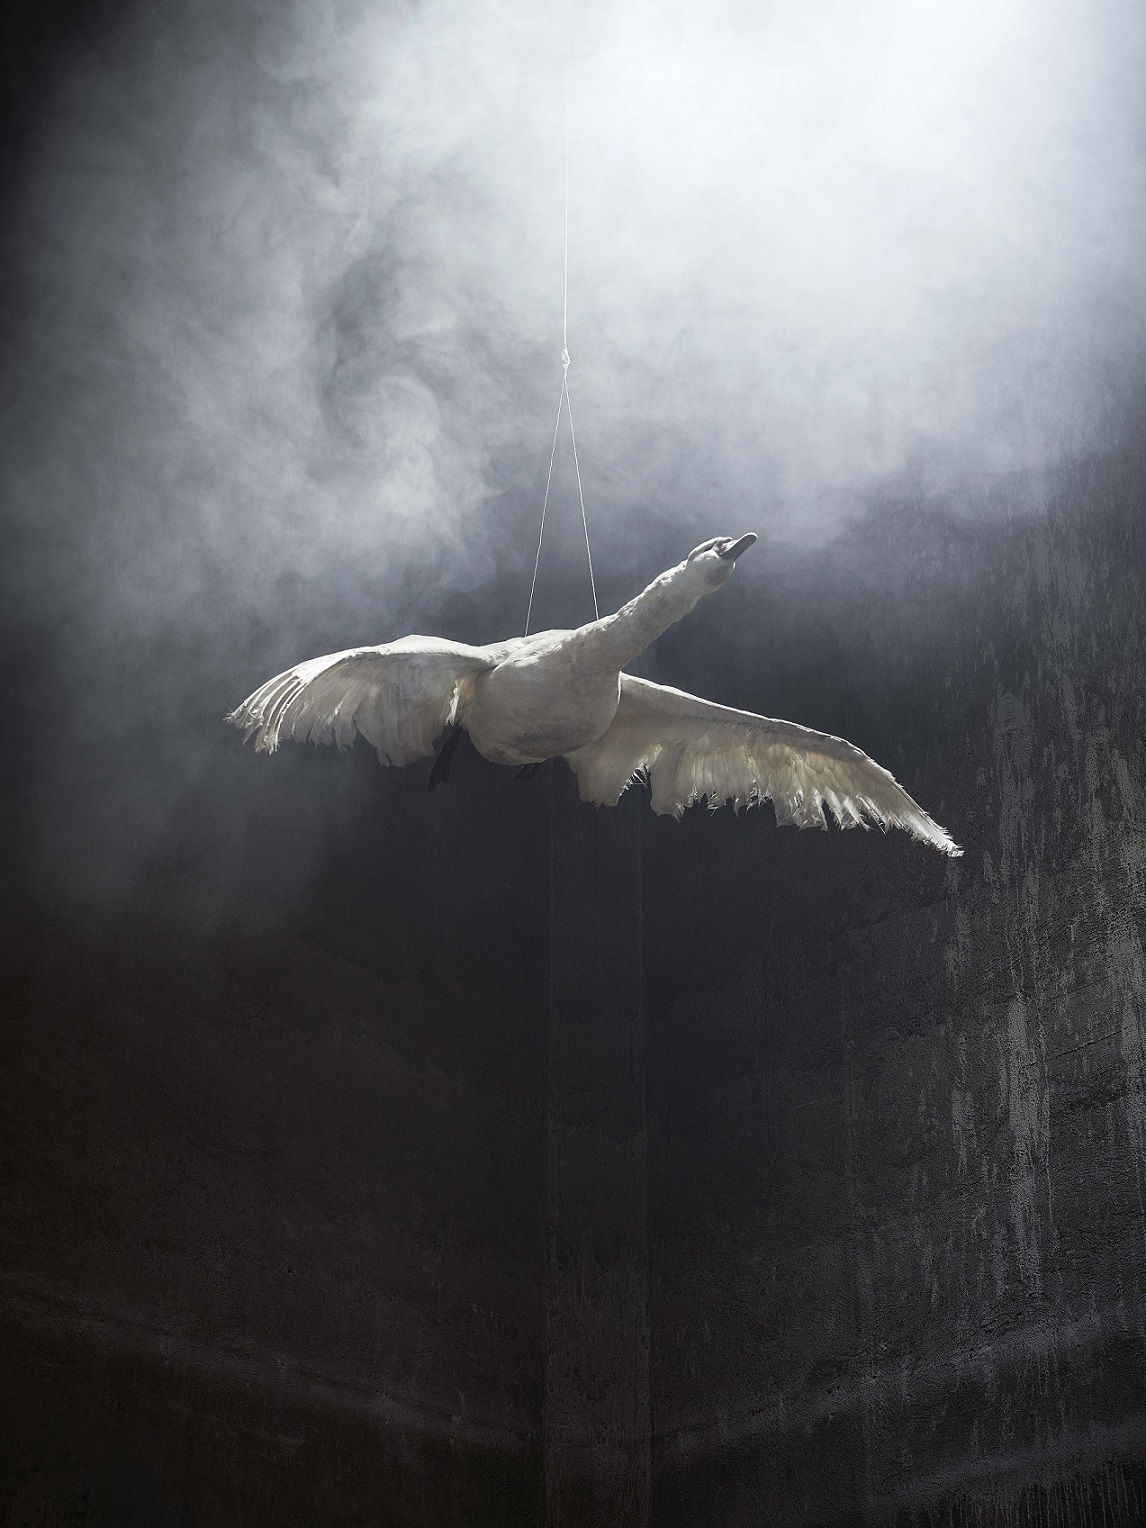 Swan in Flight 2, série Residence of Impermanence - Christian Houge - Photographie contemporaine